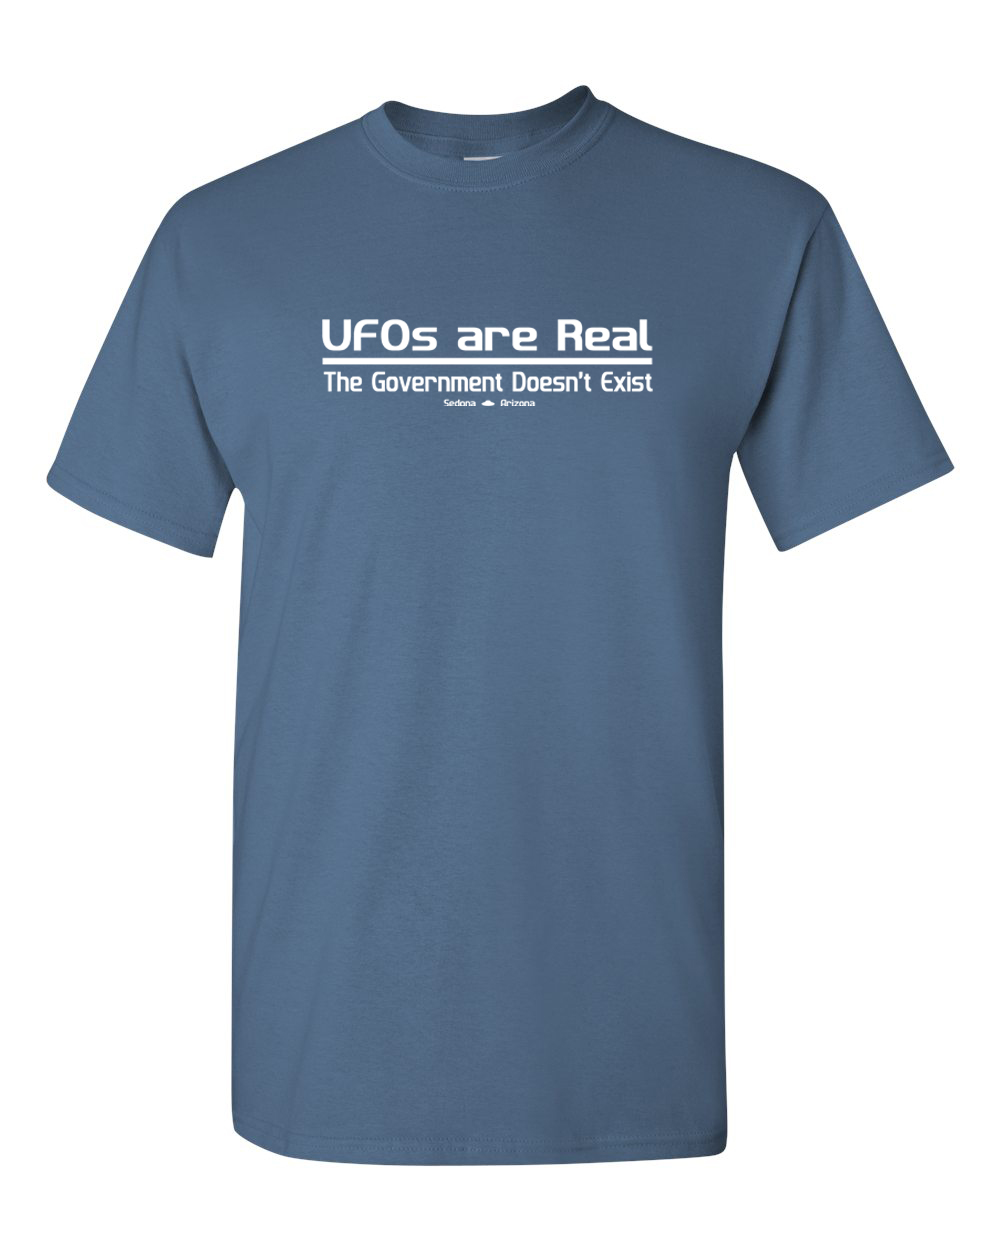 UFO_UFOs_Are_Real_Government_Doesn't_Exit_shirt_Sedona_Xfiles_conspiracy_coverup_funny